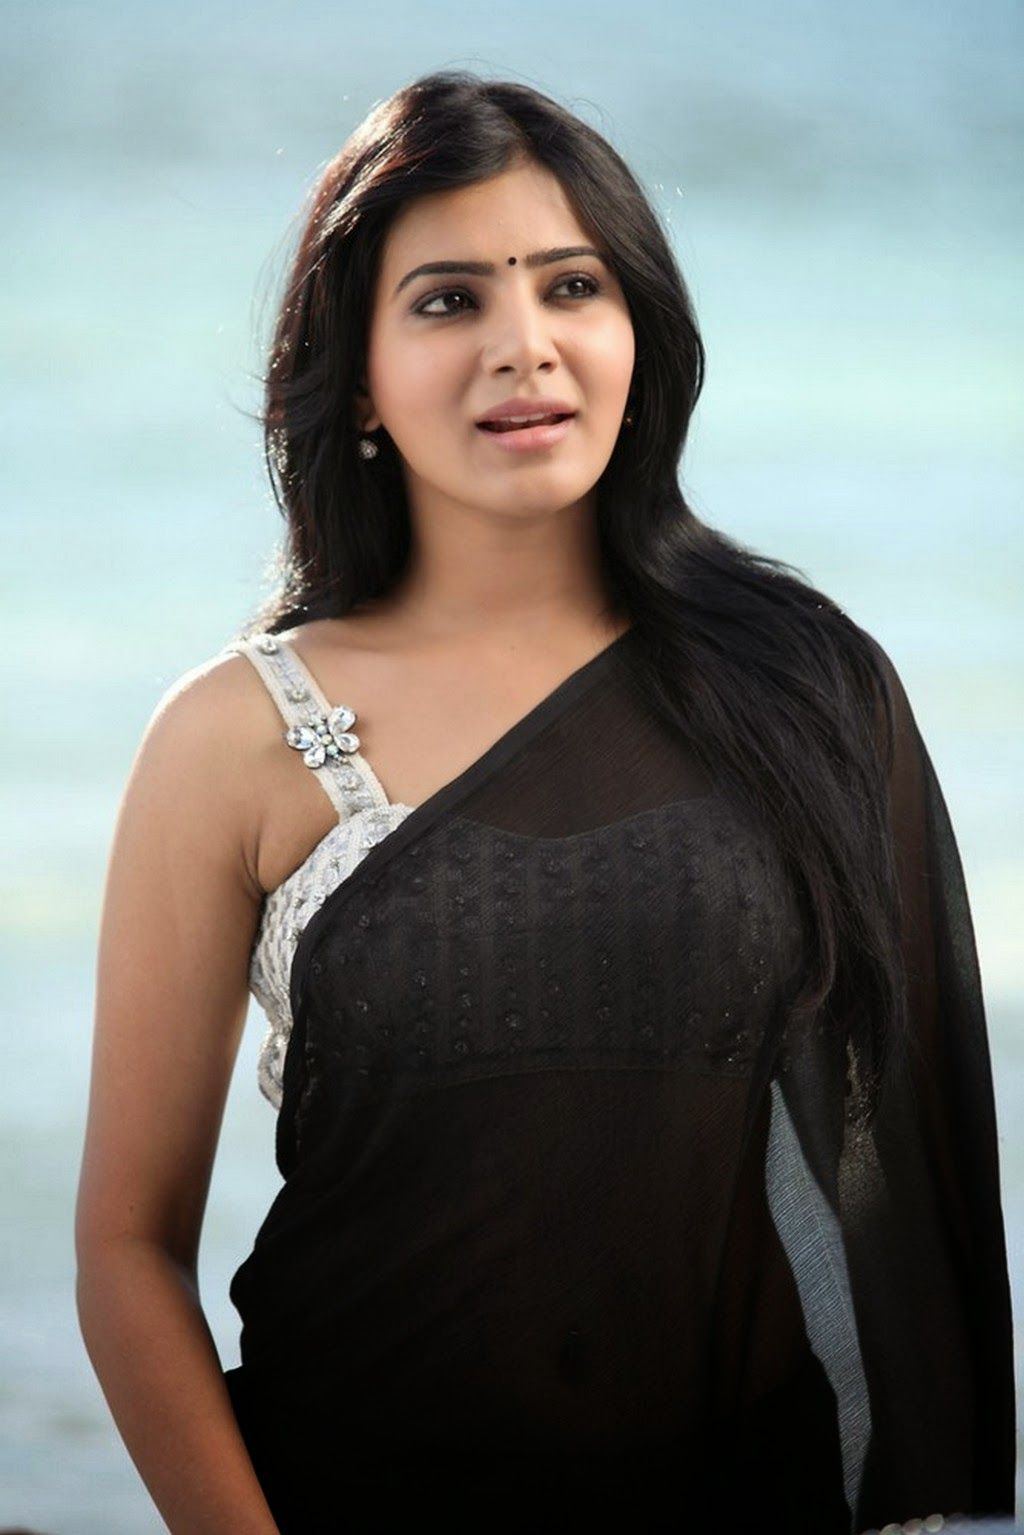 samantha in saree best saree pictures with samantha ruth | hd